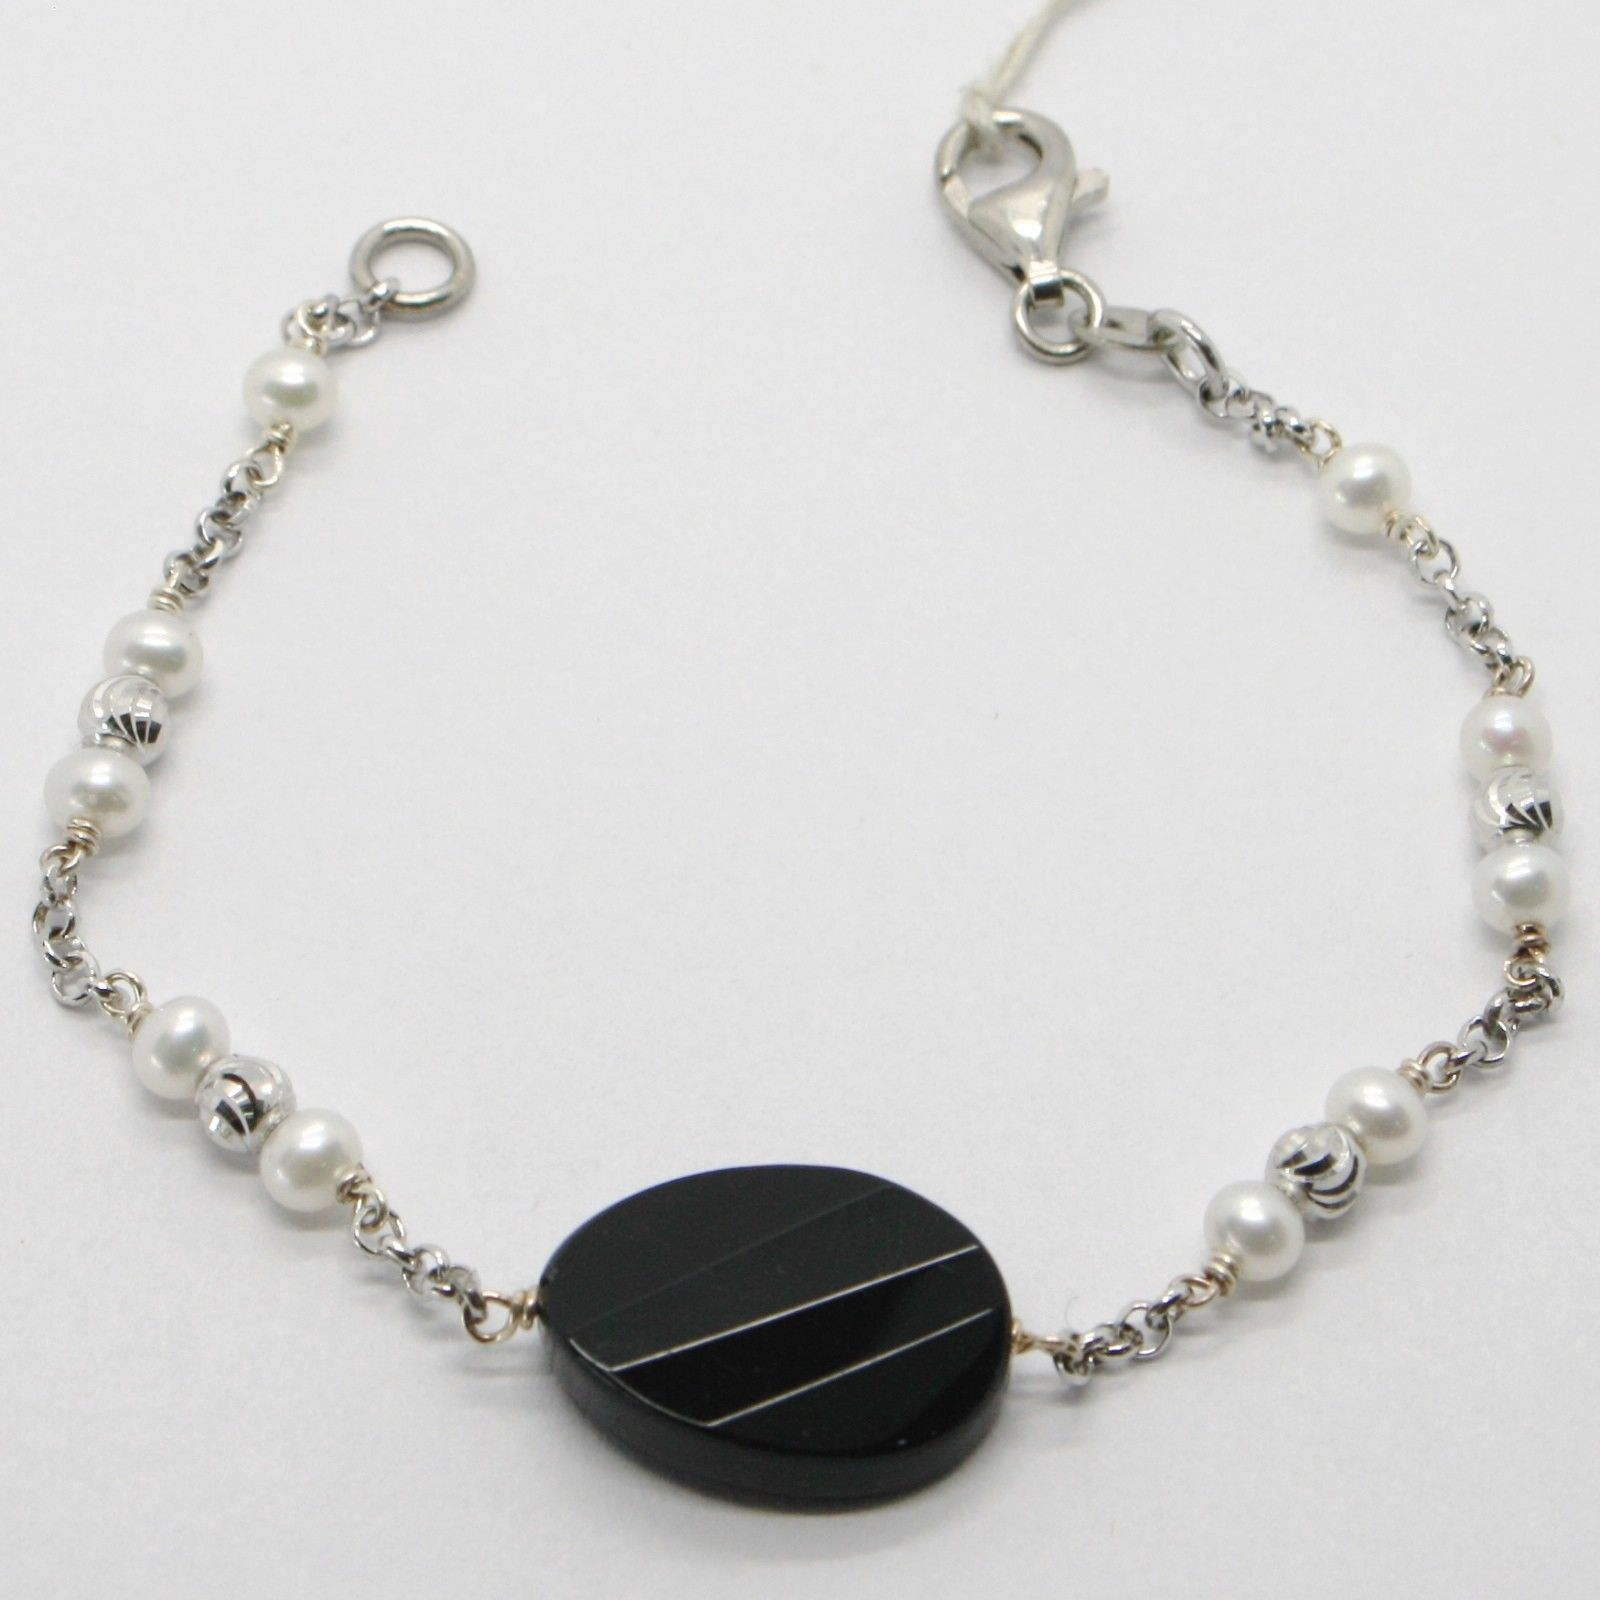 925 STERLING SILVER BRACELET WITH BIG FACETED OVAL BLACK ONYX & WHITE PEARLS